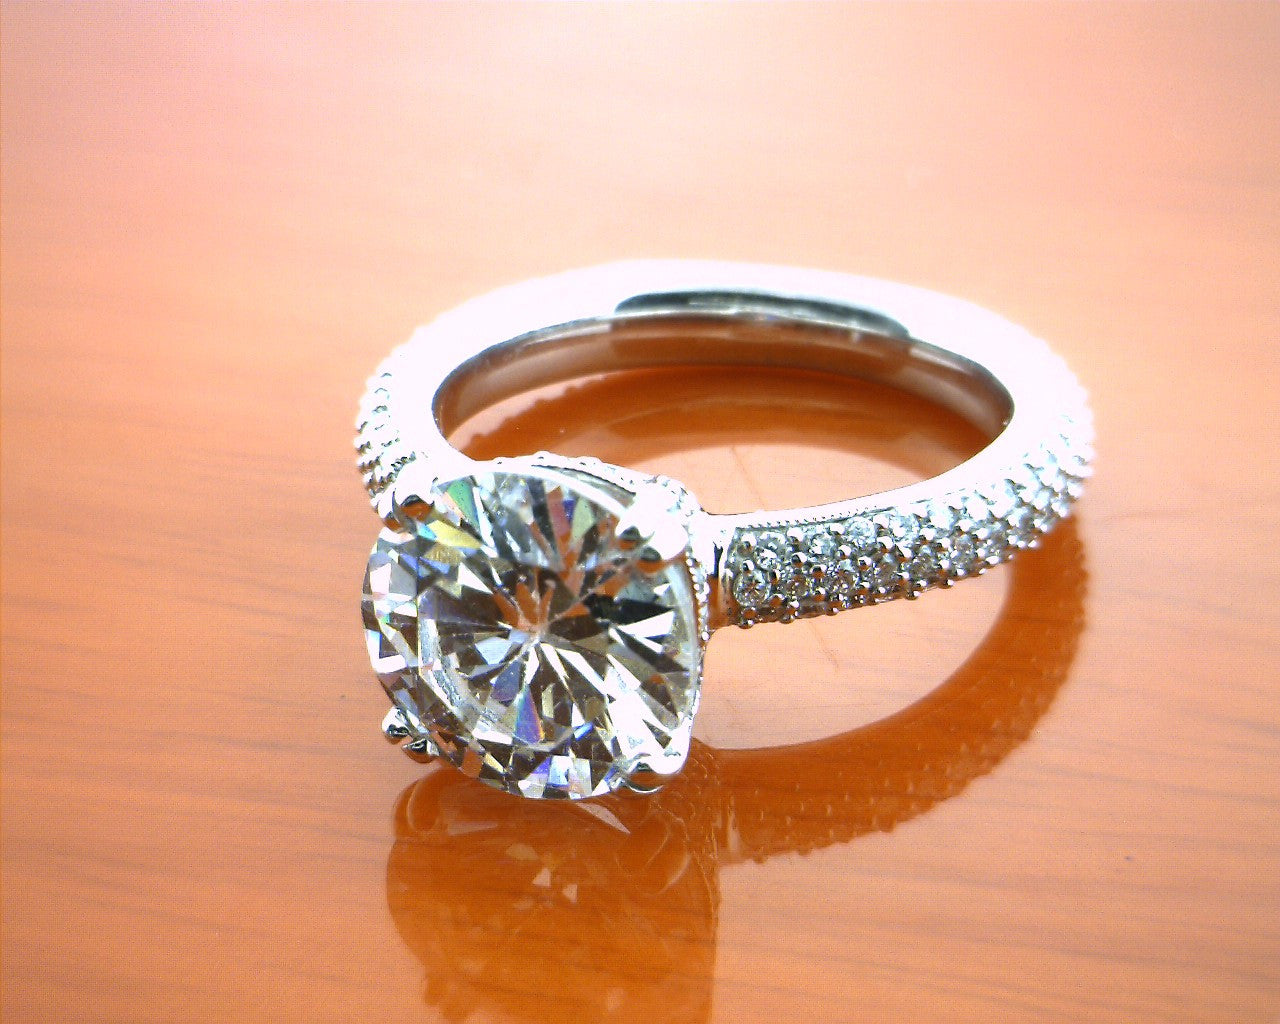 14k White Gold Solitaire Engagement Ring With Triple Row Diamond